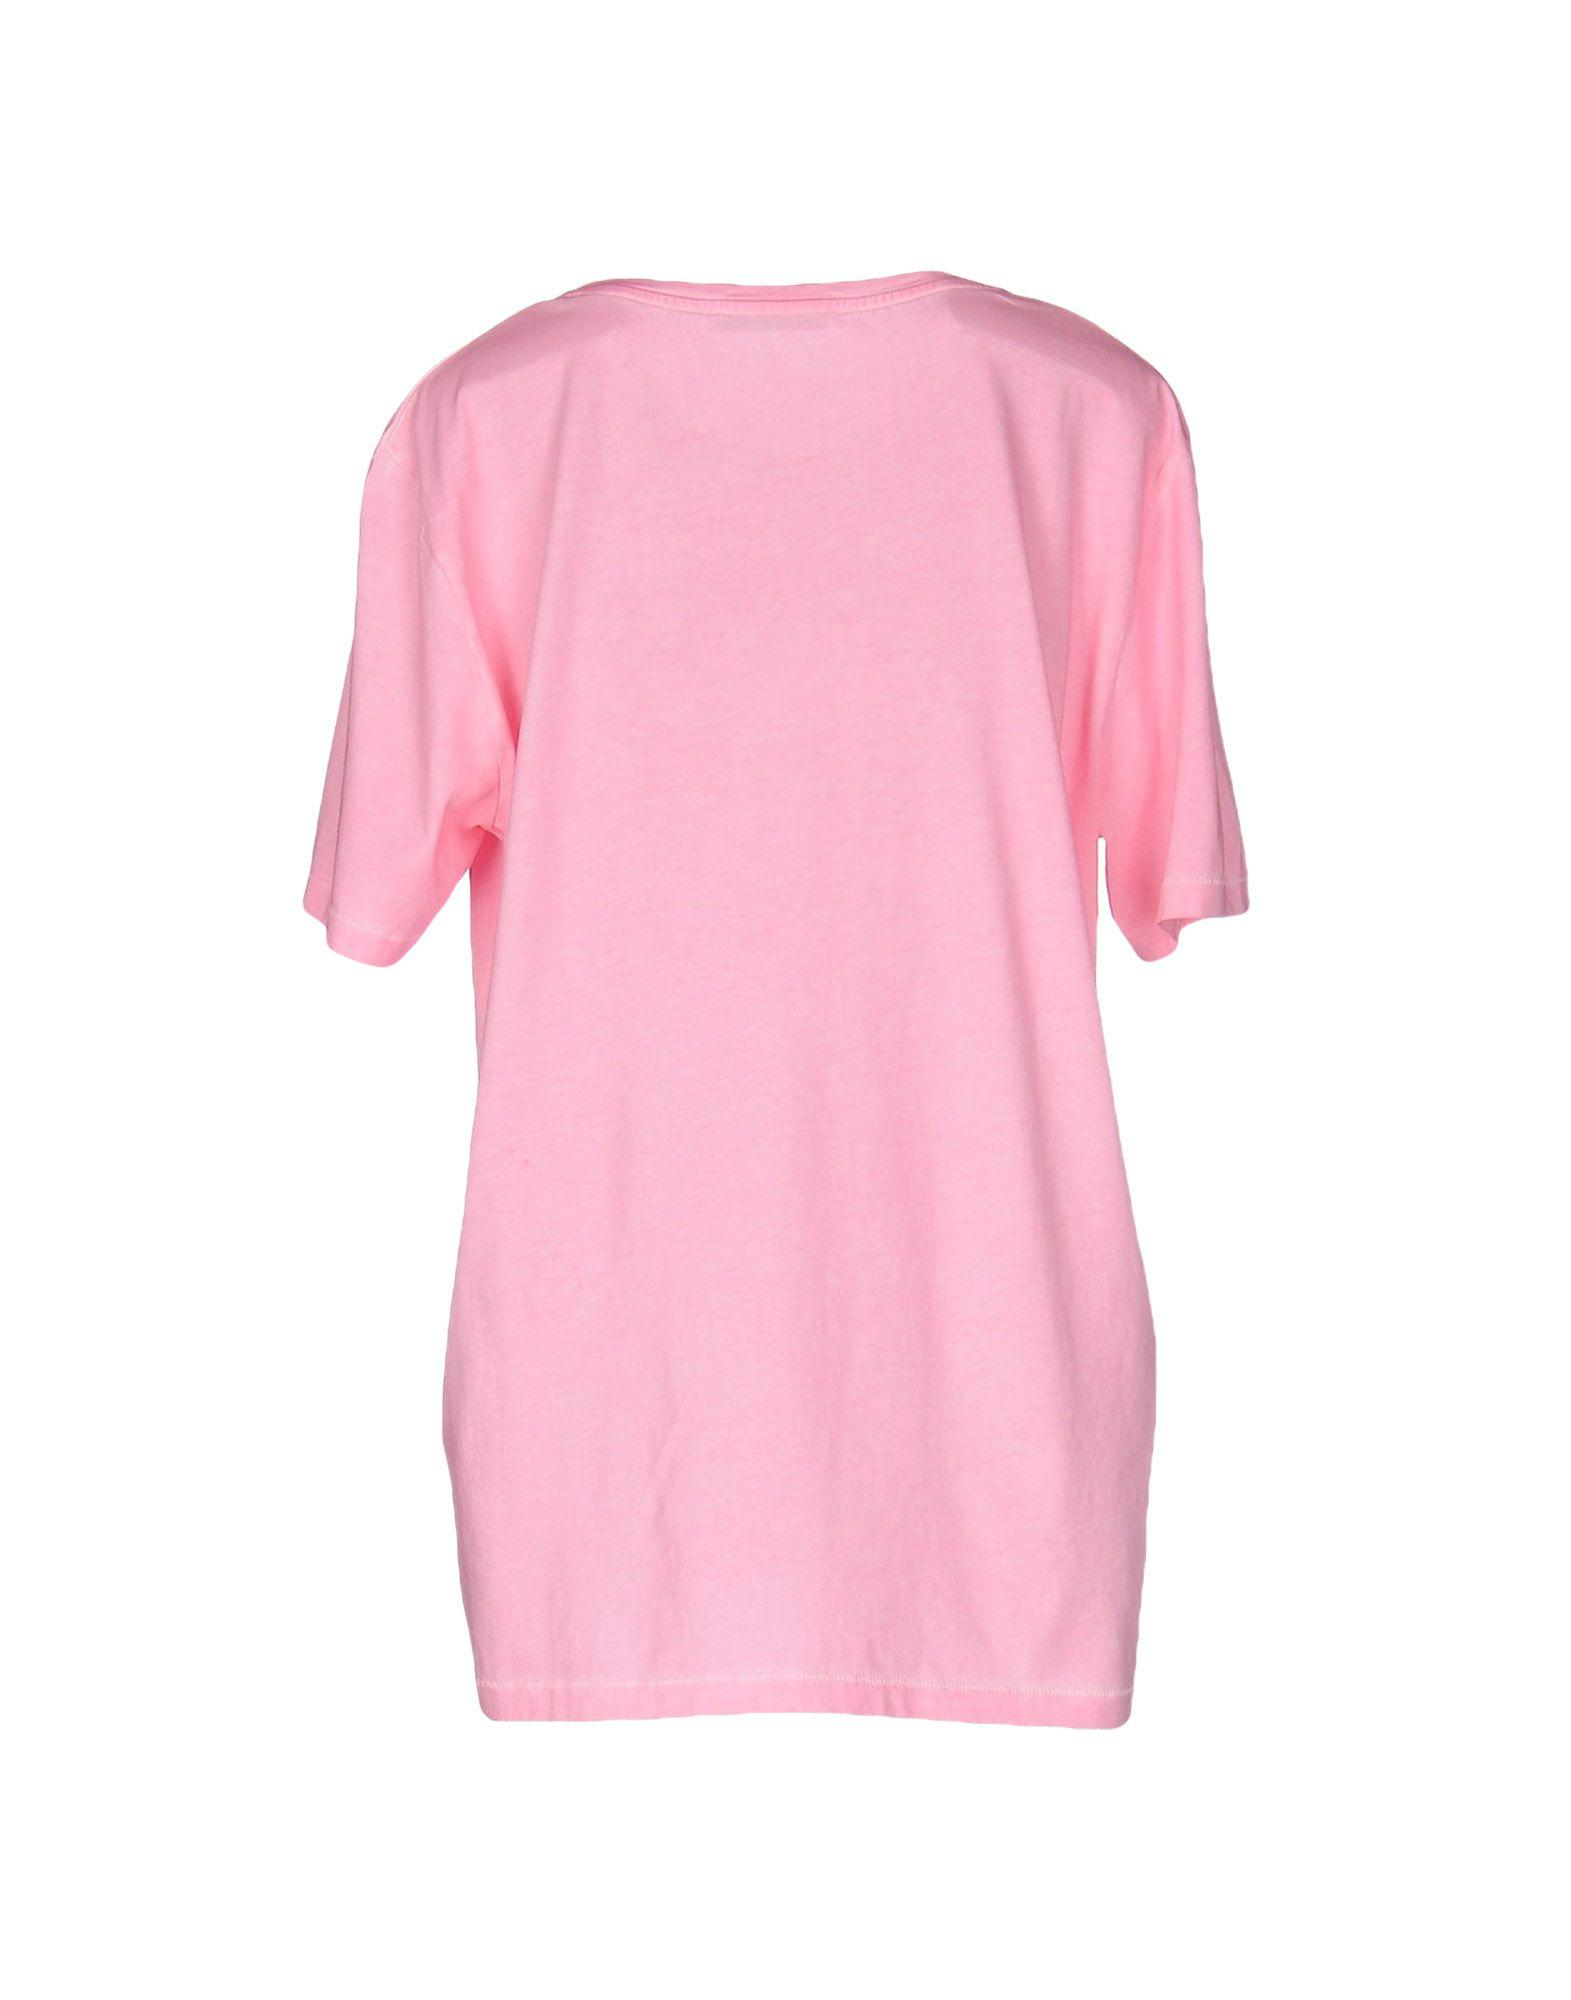 Acne Studios T Shirt In Pink Lyst